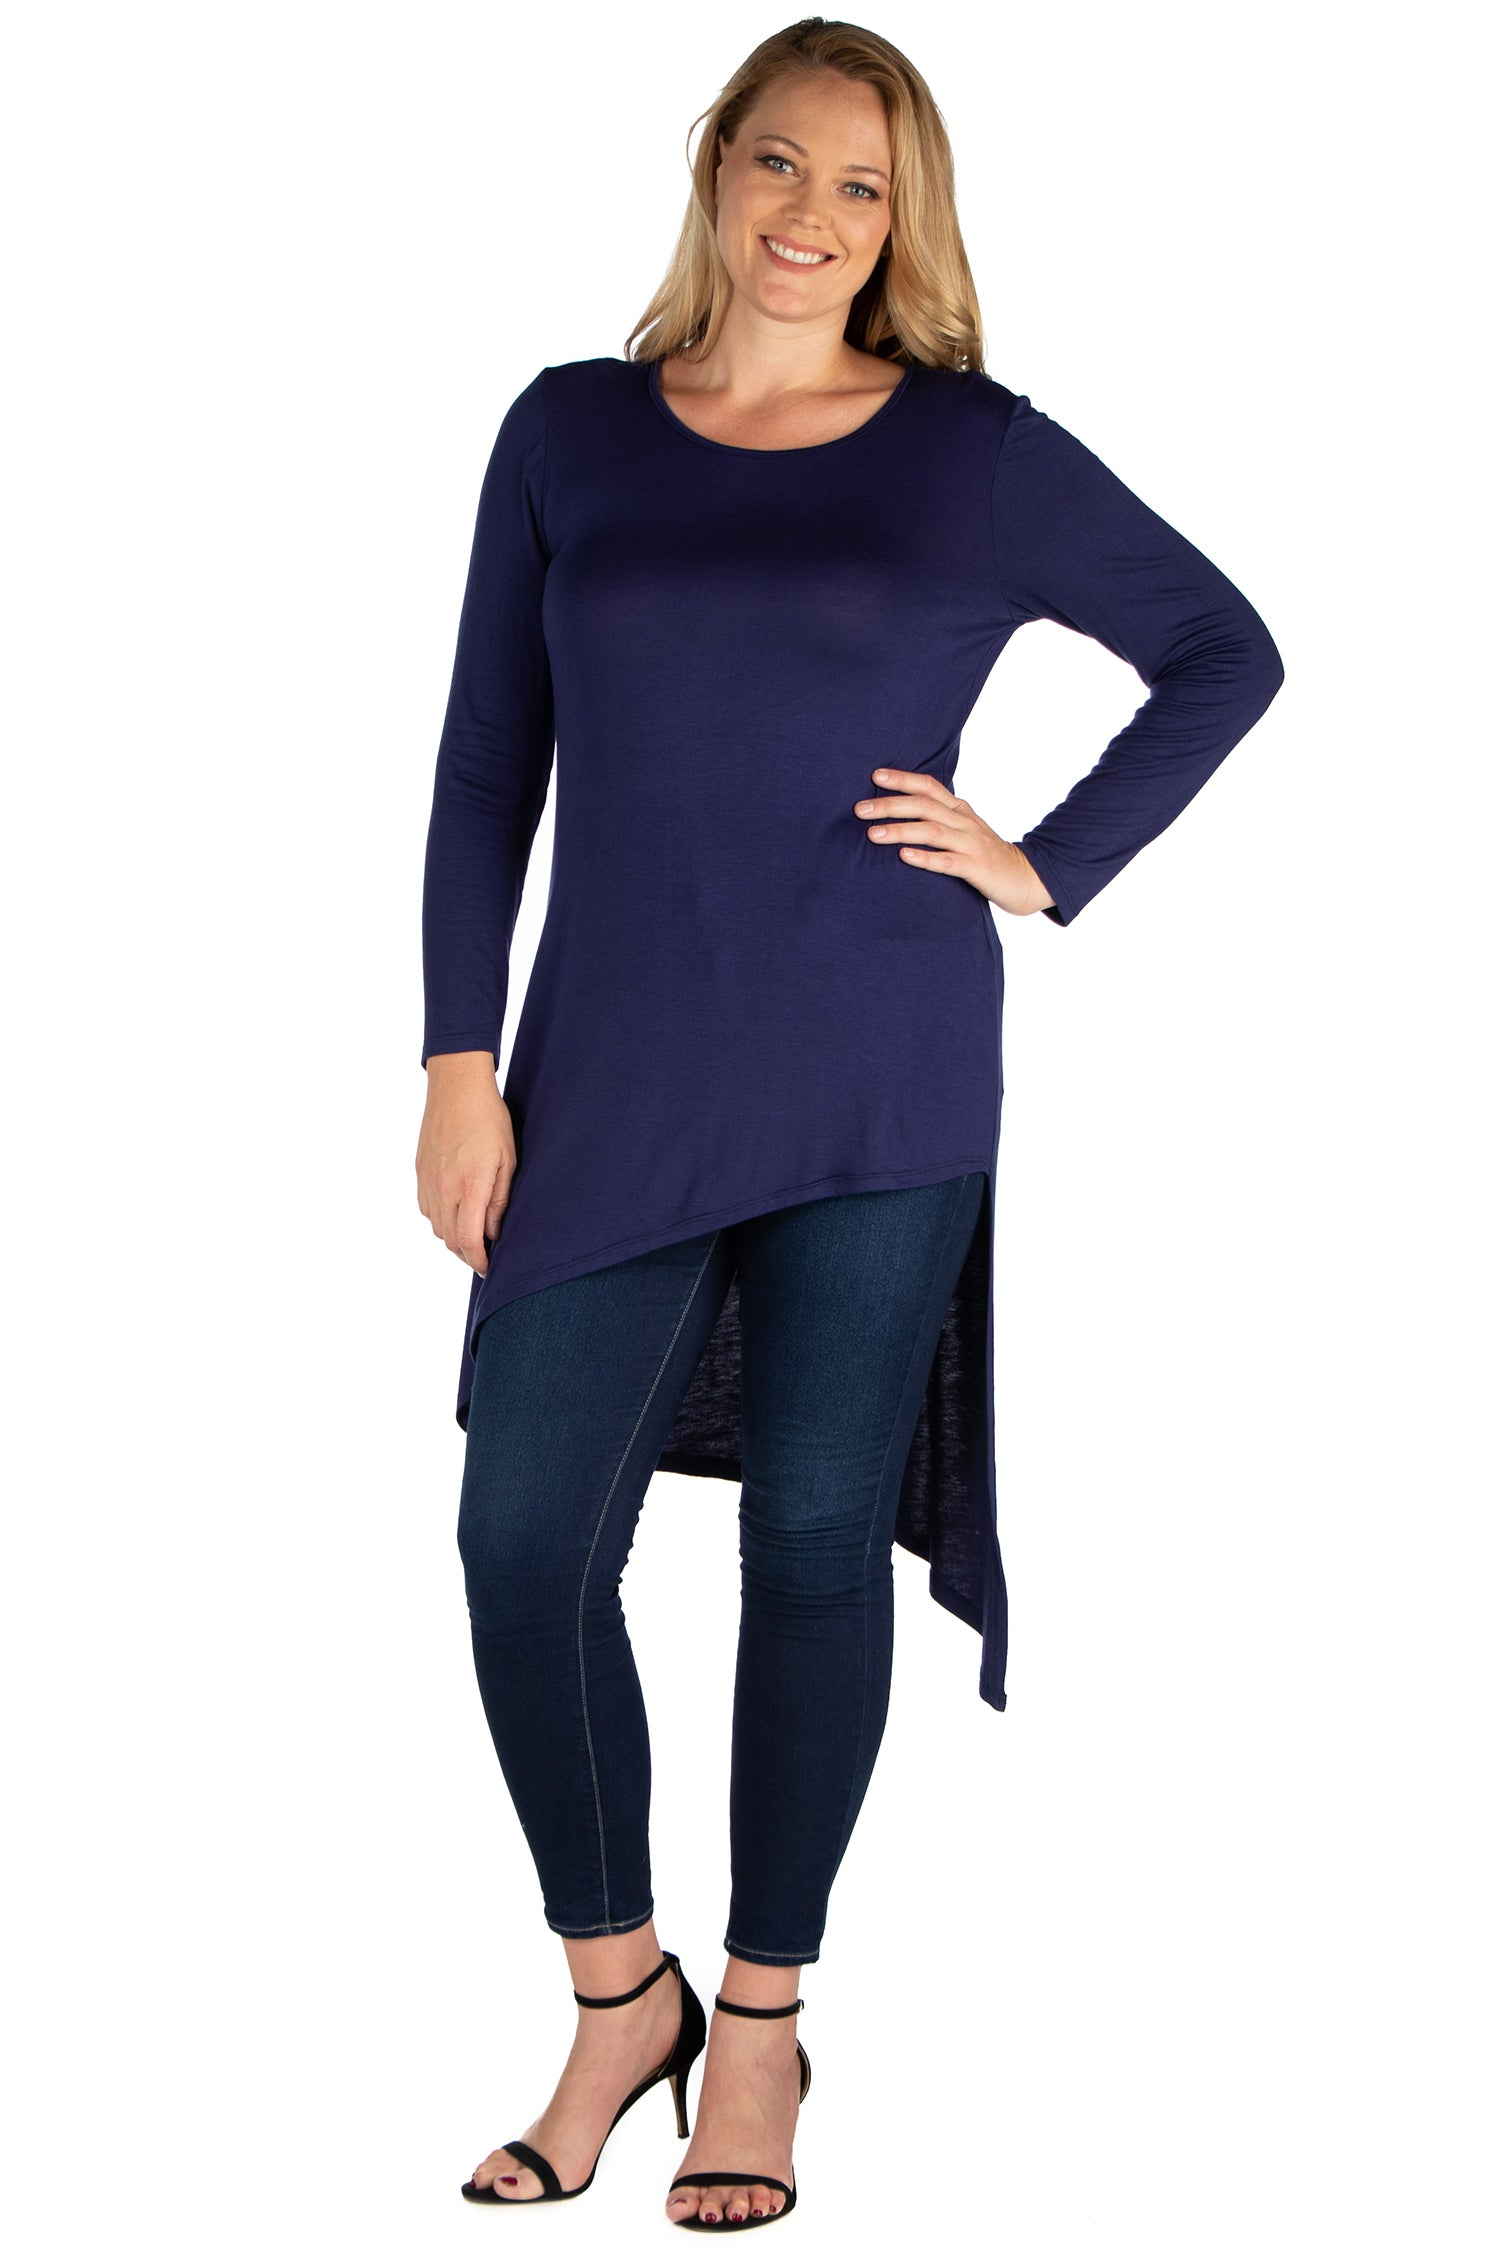 24seven Comfort Apparel Long Sleeve Knee Length Asymmetrical Plus Size Tunic Top-TOPS-24Seven Comfort Apparel-NAVY-1X-24/7 Comfort Apparel